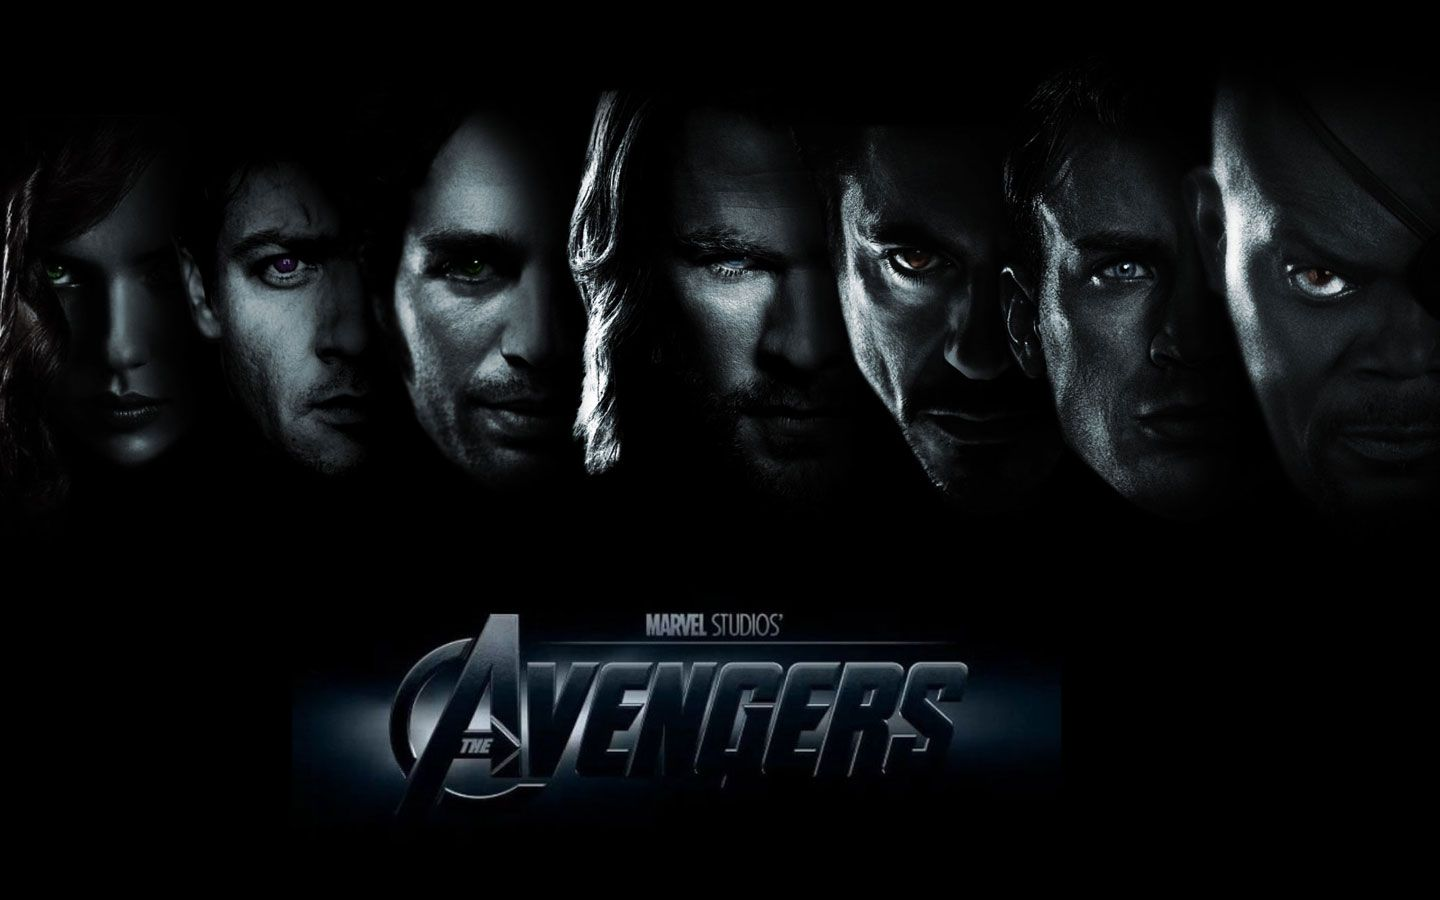 Collection Of Avenger Desktop Wallpaper On Hdwallpapers 1440x900